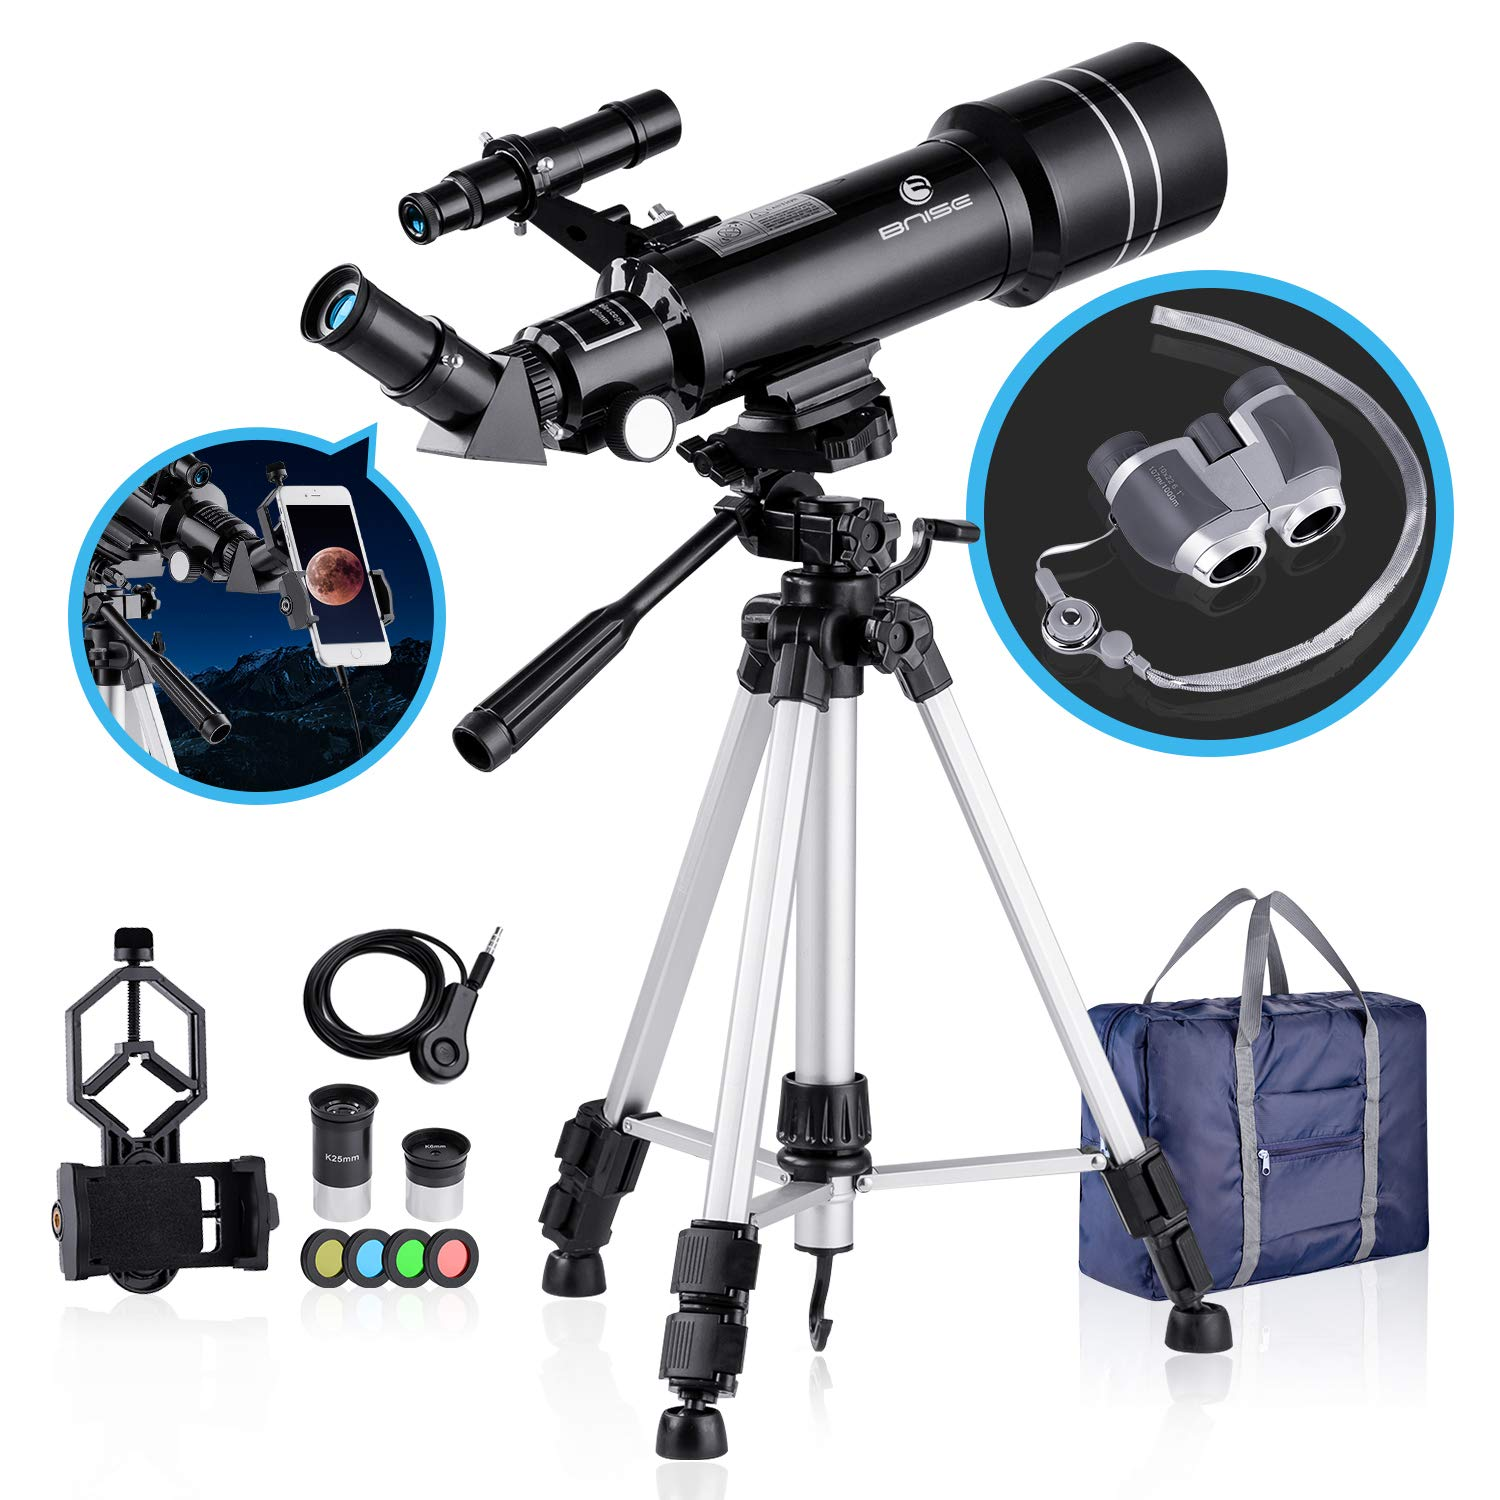 with Adjustable Tripod Smartphone Adapter Finder Scope Moon Filter and Carry Bag BNISE Telescope for Kids Adults Astronomy Beginners Refractor Telescope 70mm Objective Lens 400mm Focal Length